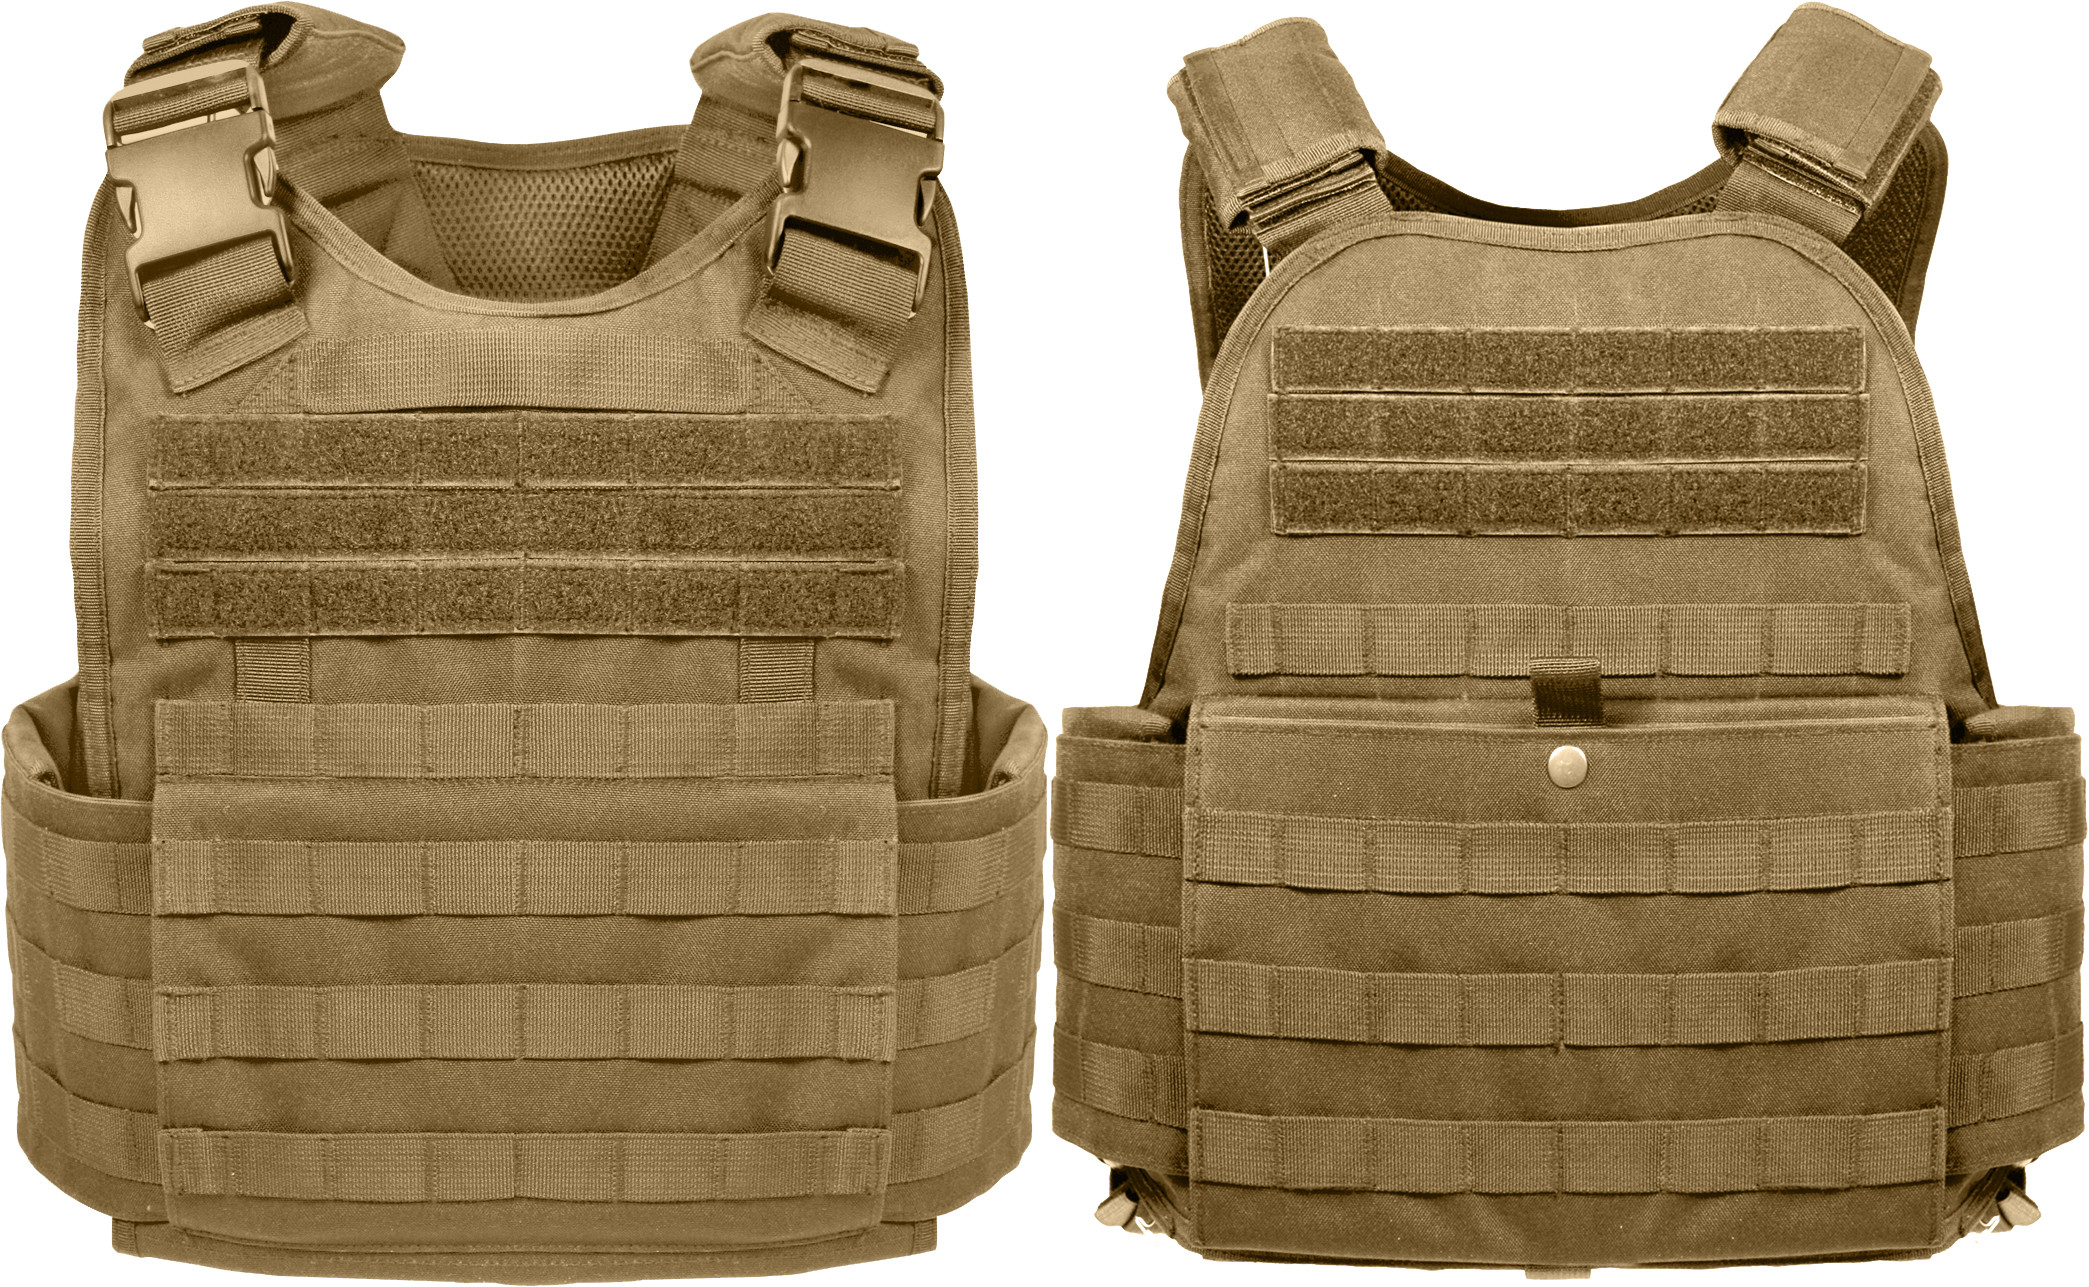 More Views. Coyote Brown Tactical MOLLE Plate Carrier Assault Vest ... 006146c94cb